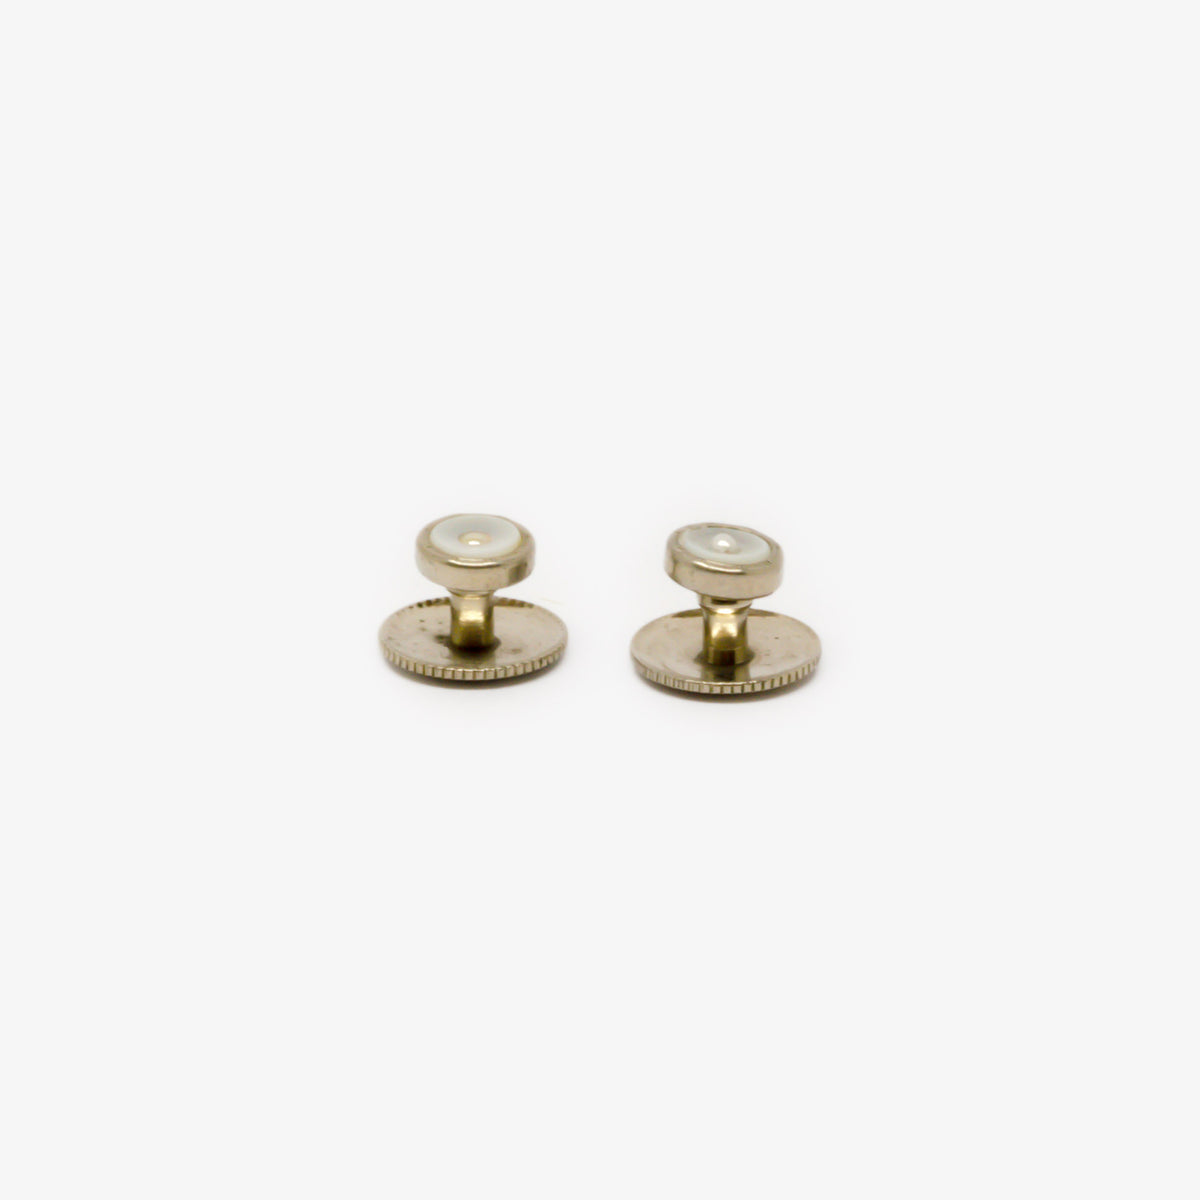 Jordans Jewellers antique pearl dress studs - Alternate shot 1 - Alternate shot 2